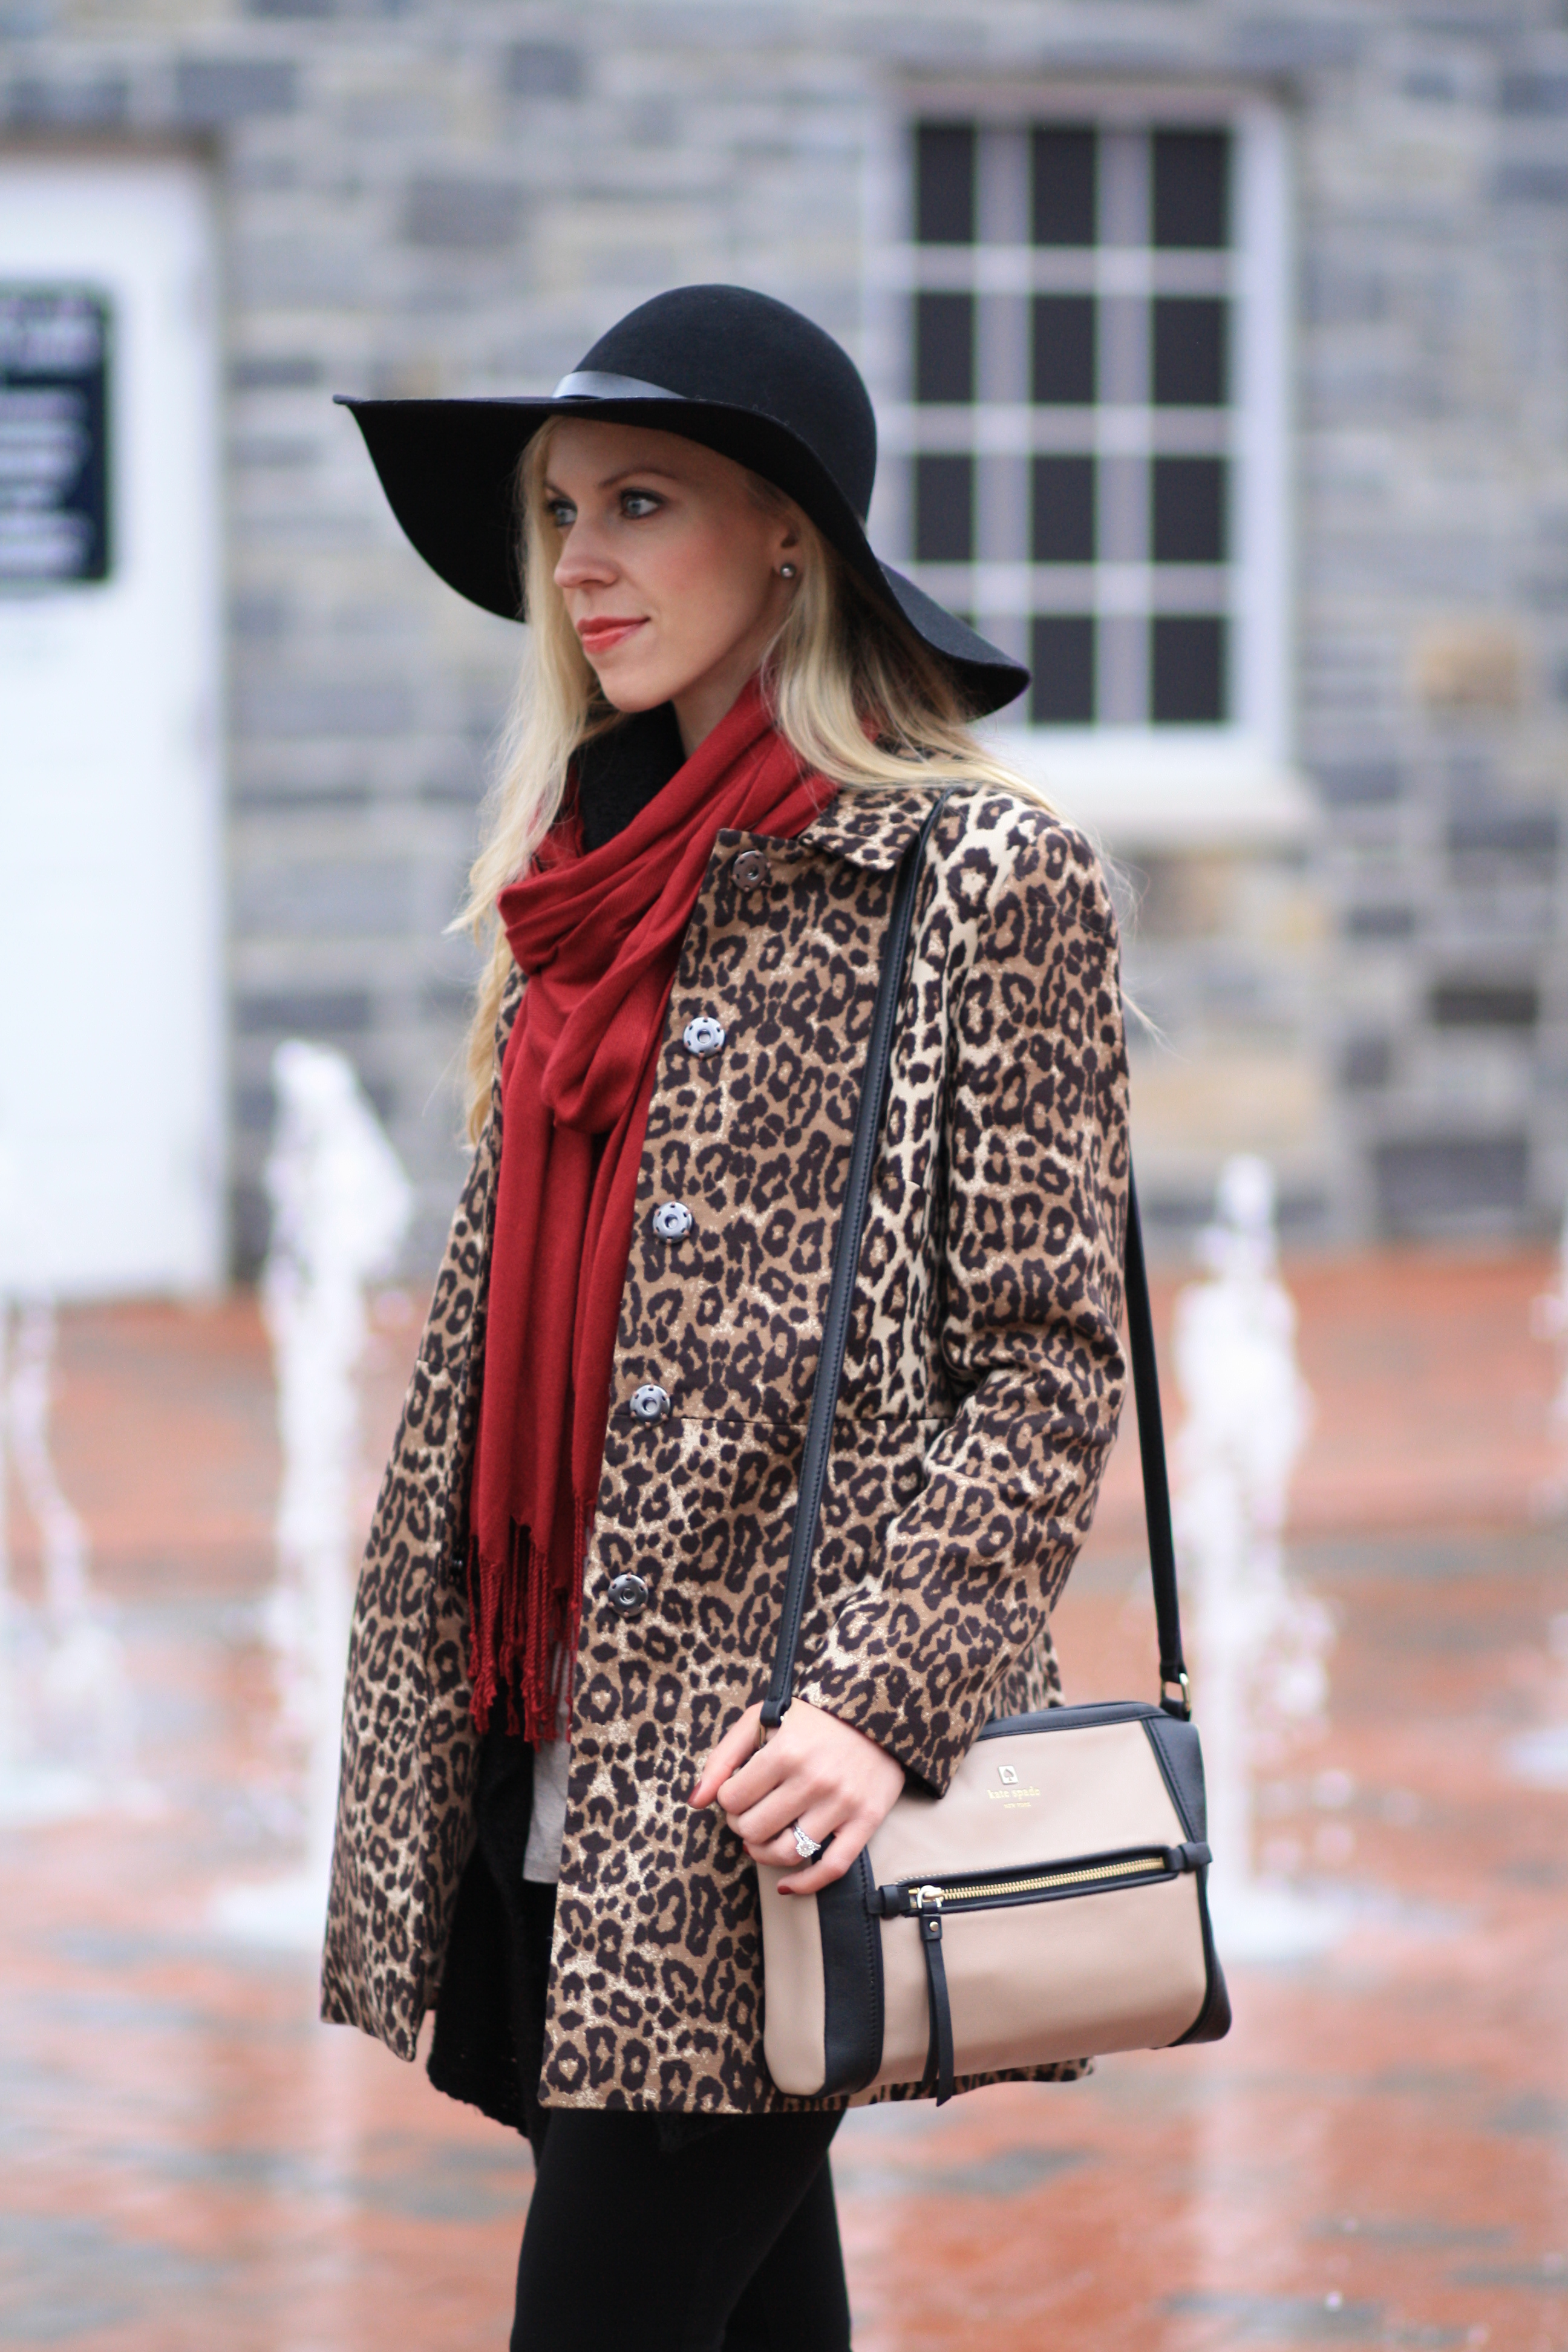 a1158fbe774 Rainy Day Layers: Leopard coat, Red scarf & Hunter boots ...